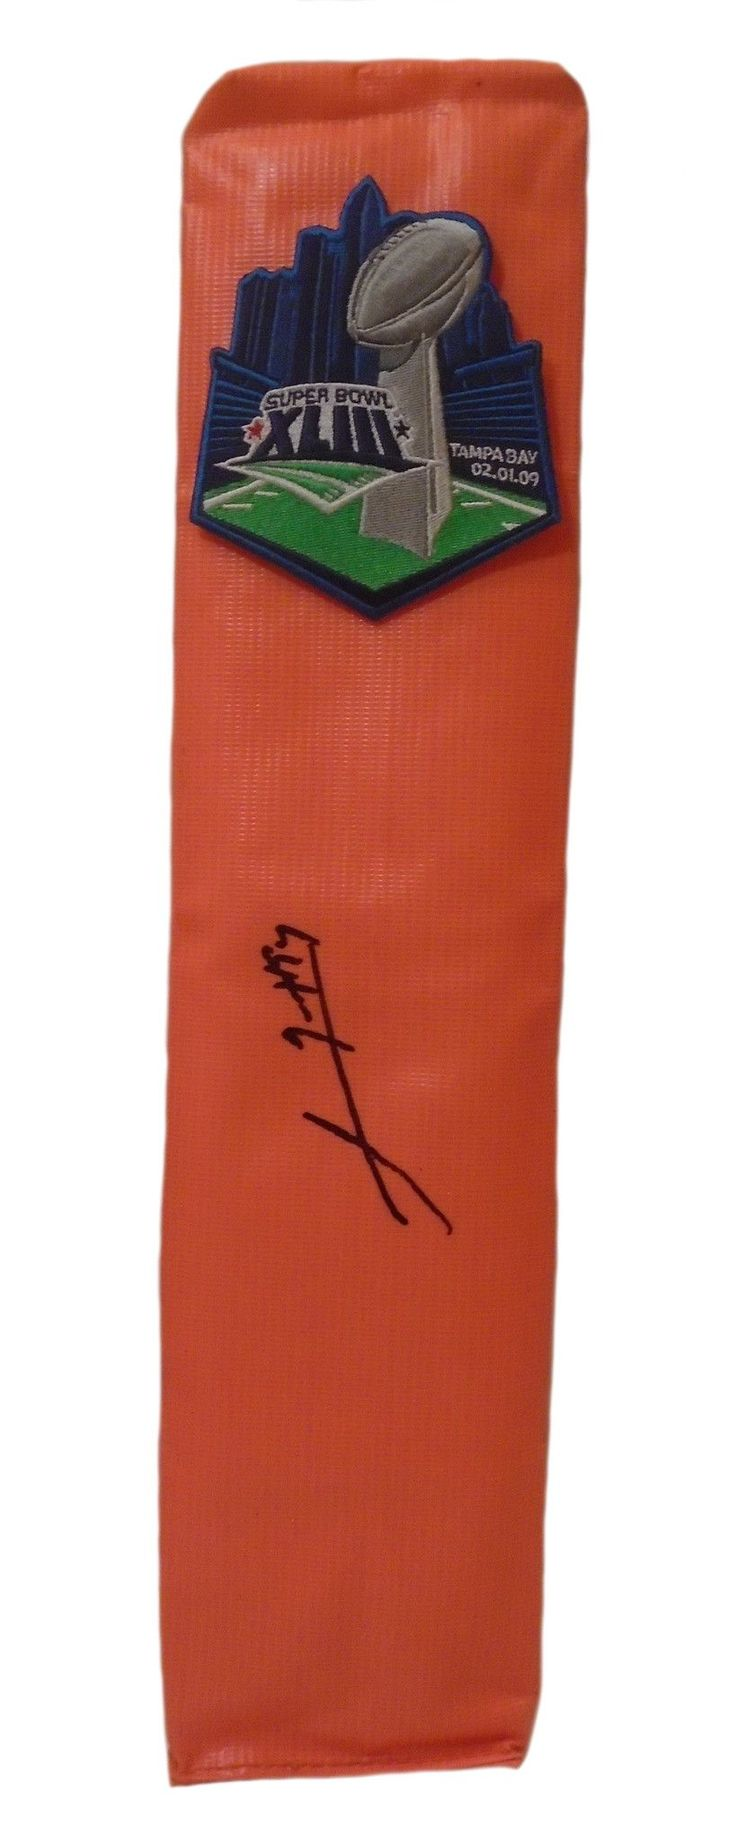 Lawrence Timmons signed Pittsburgh Steelers full size football touchdown end zone pylon w/ proof photo.  Proof photo of Lawrence signing will be included with your purchase along with a COA issued from Southwestconnection-Memorabilia, guaranteeing the item to pass authentication services from PSA/DNA or JSA. Free USPS shipping. www.AutographedwithProof.com is your one stop for autographed collectibles from Pittsburgh sports teams. Check back with us often, as we are always obtaining new…